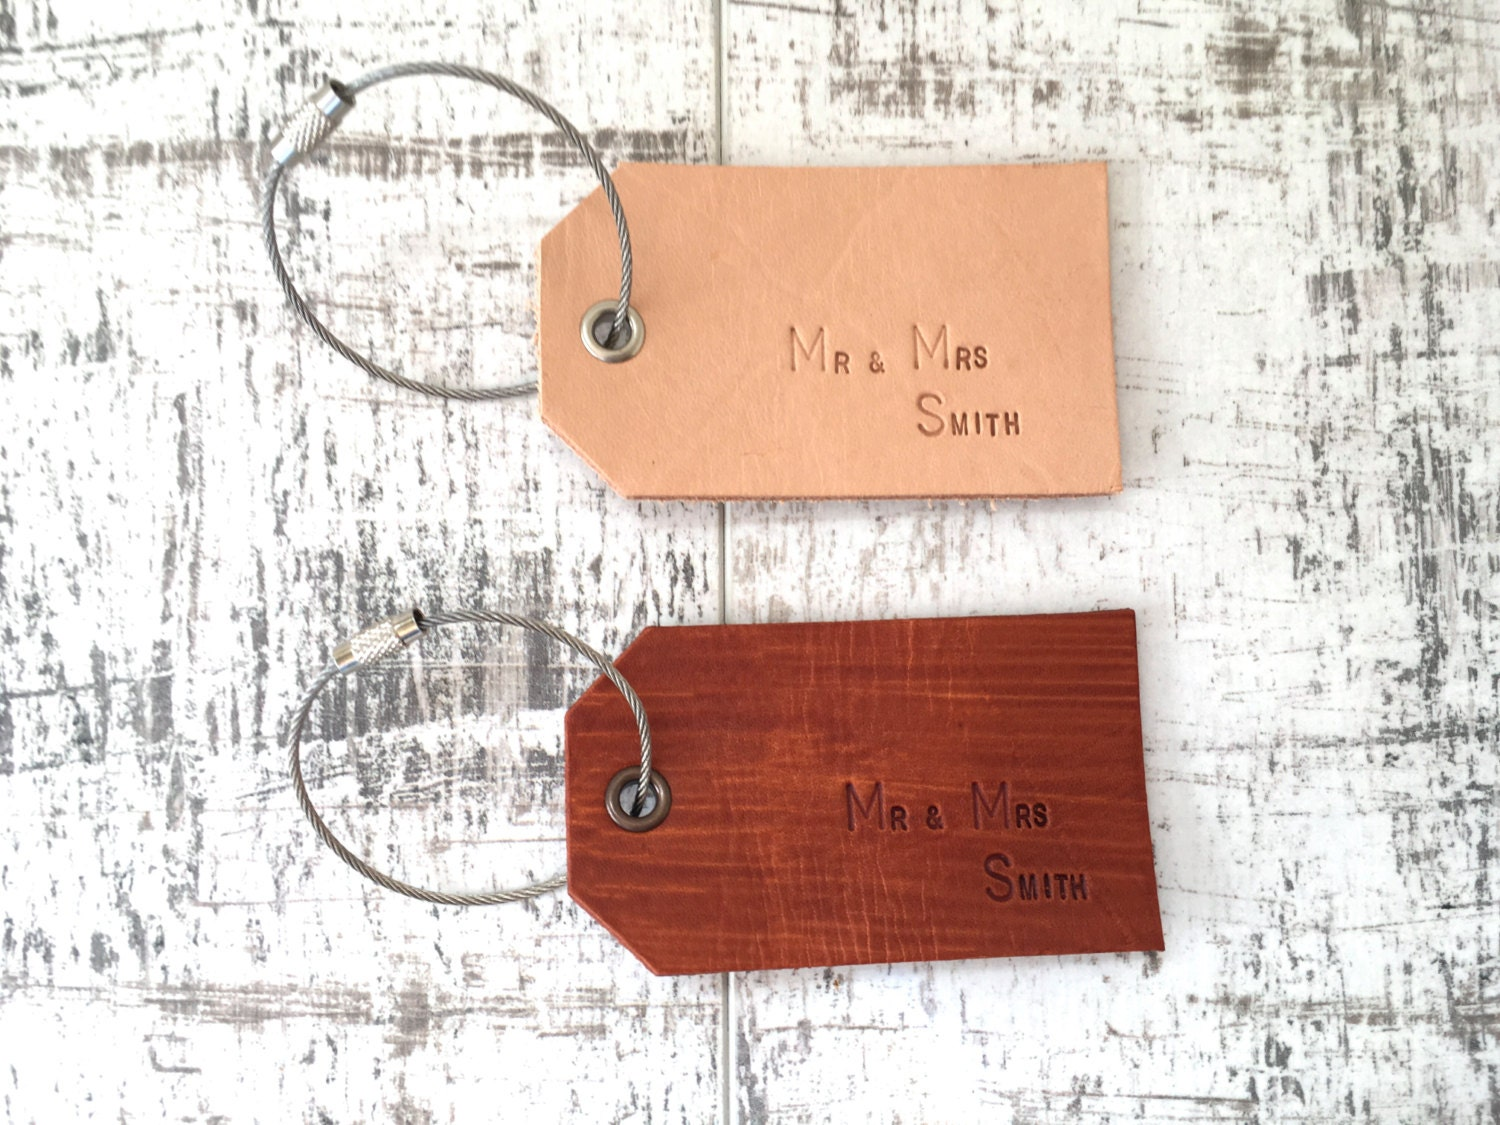 Mr and mrs gift set of 2 personalised luggage labels leather luggage tag custom tags case labels wedding 3rd anniversary present